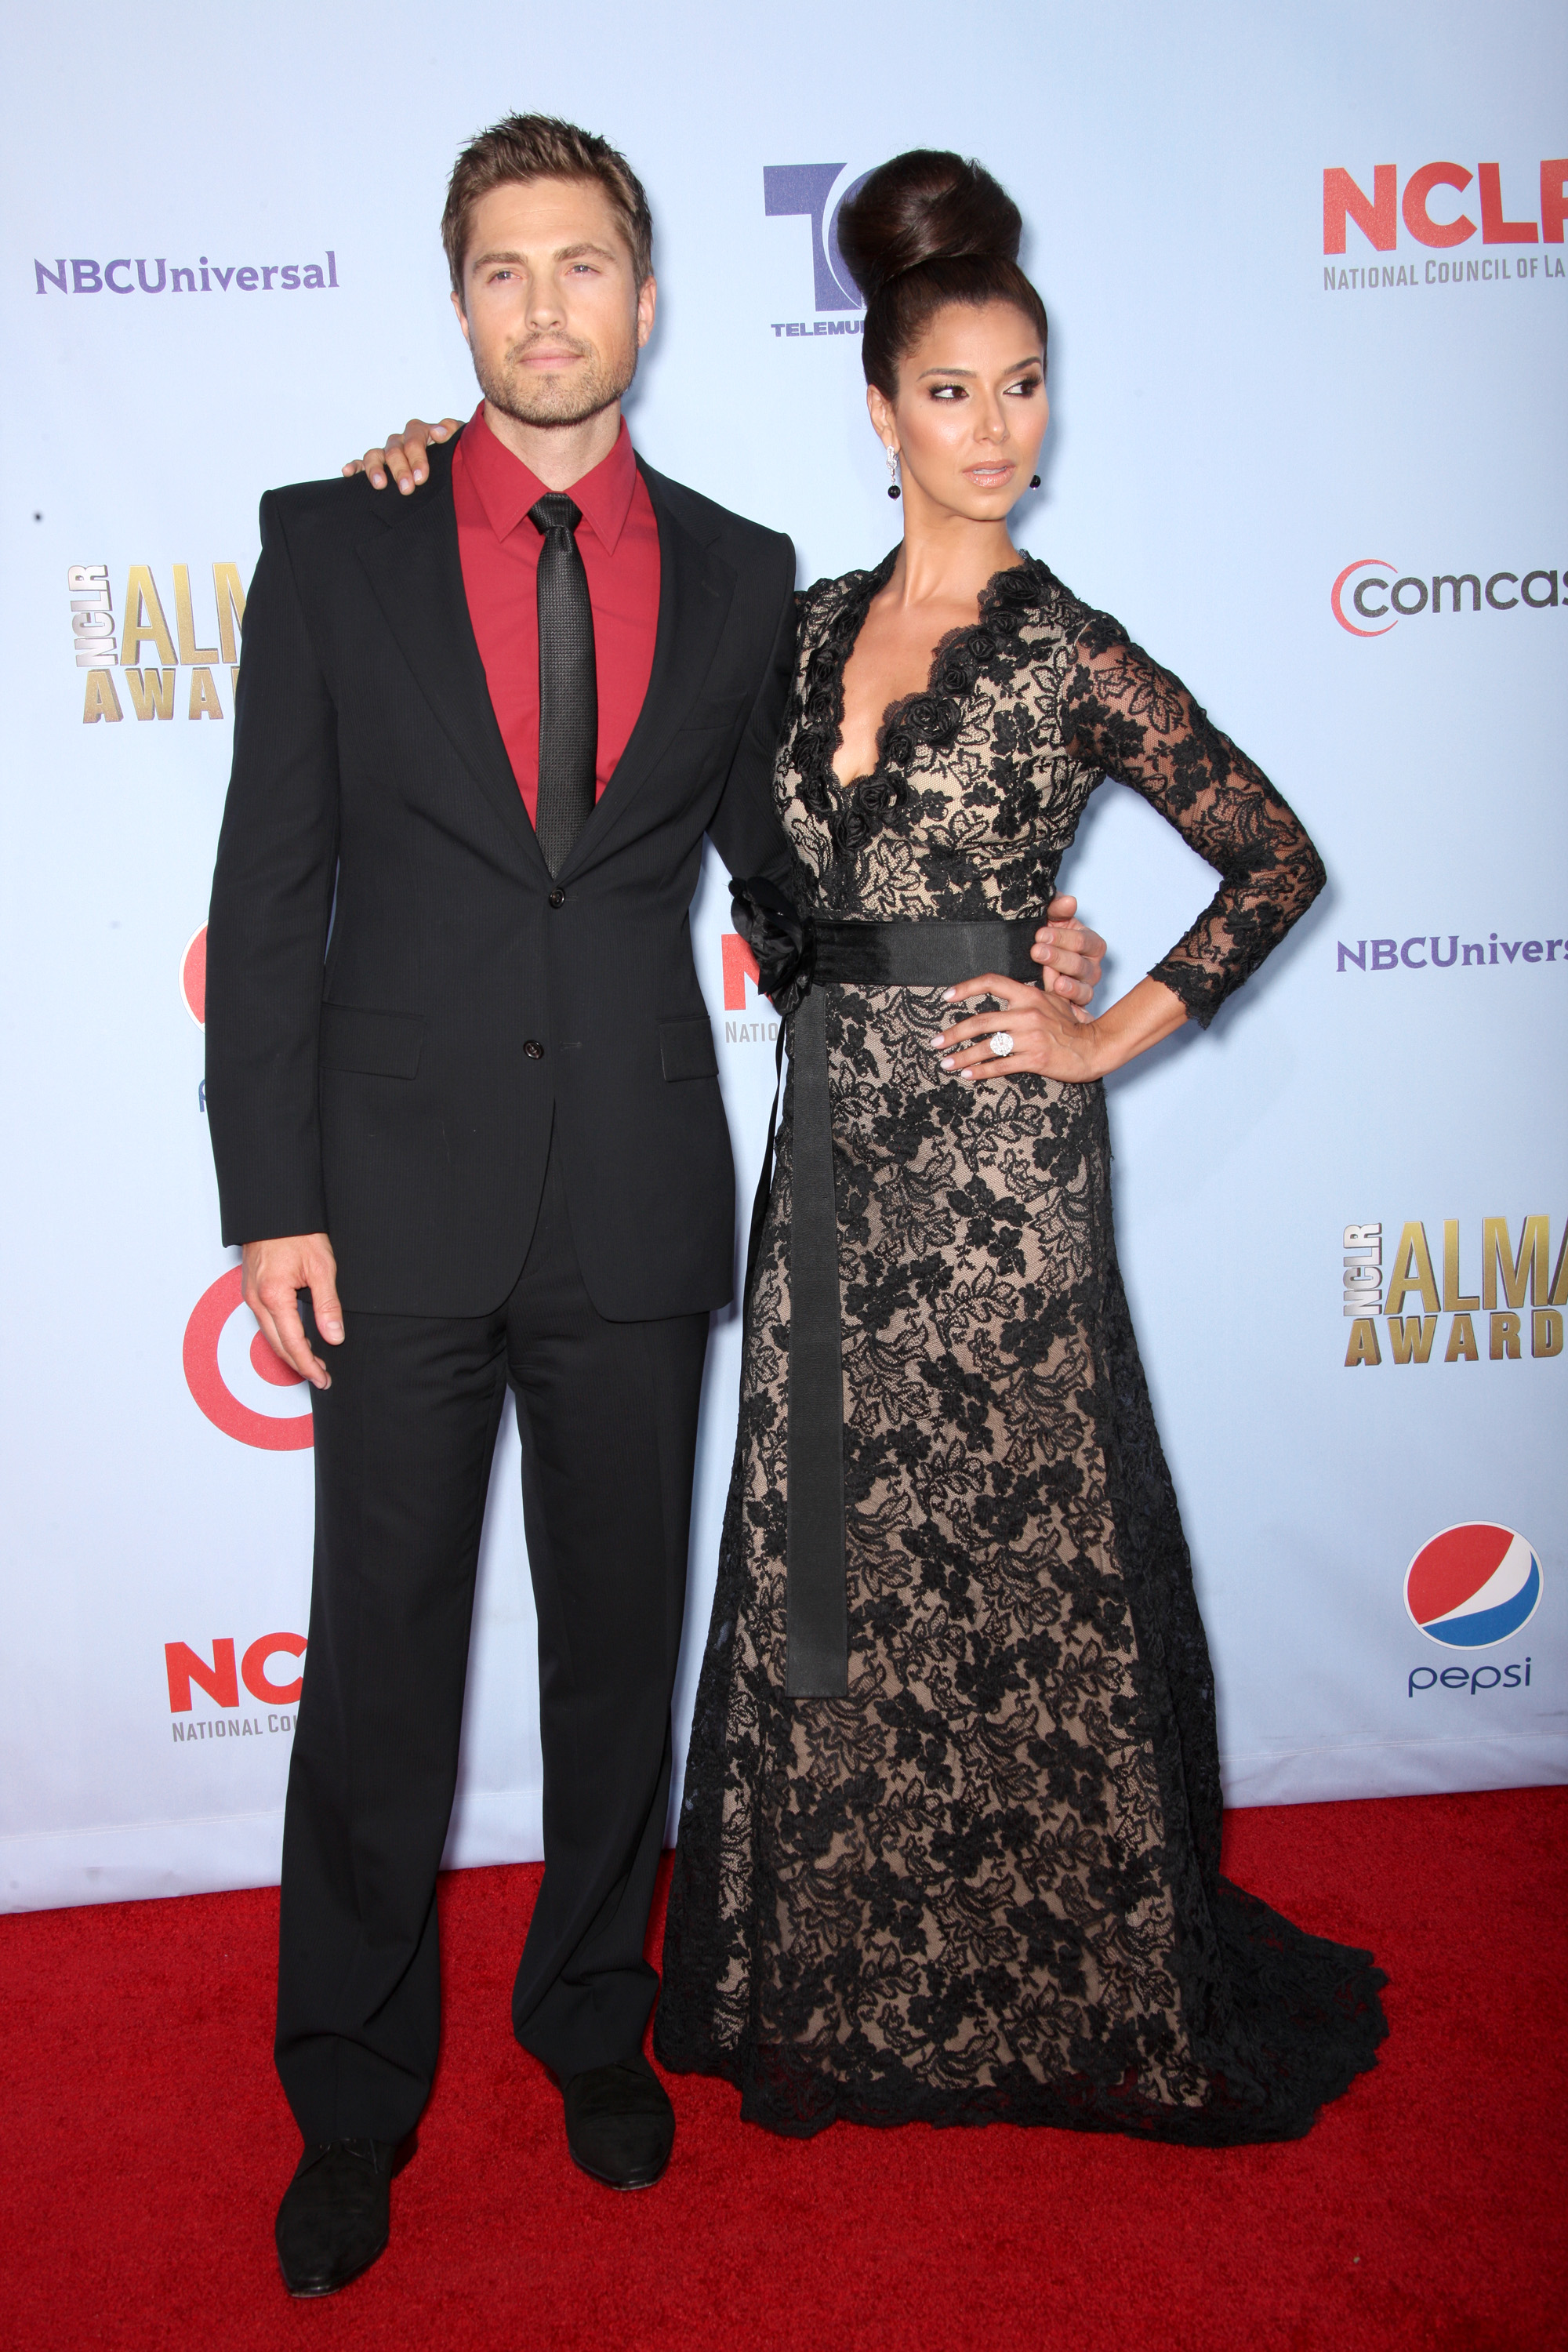 Roselyn Sanchez and Eric Winter posed.